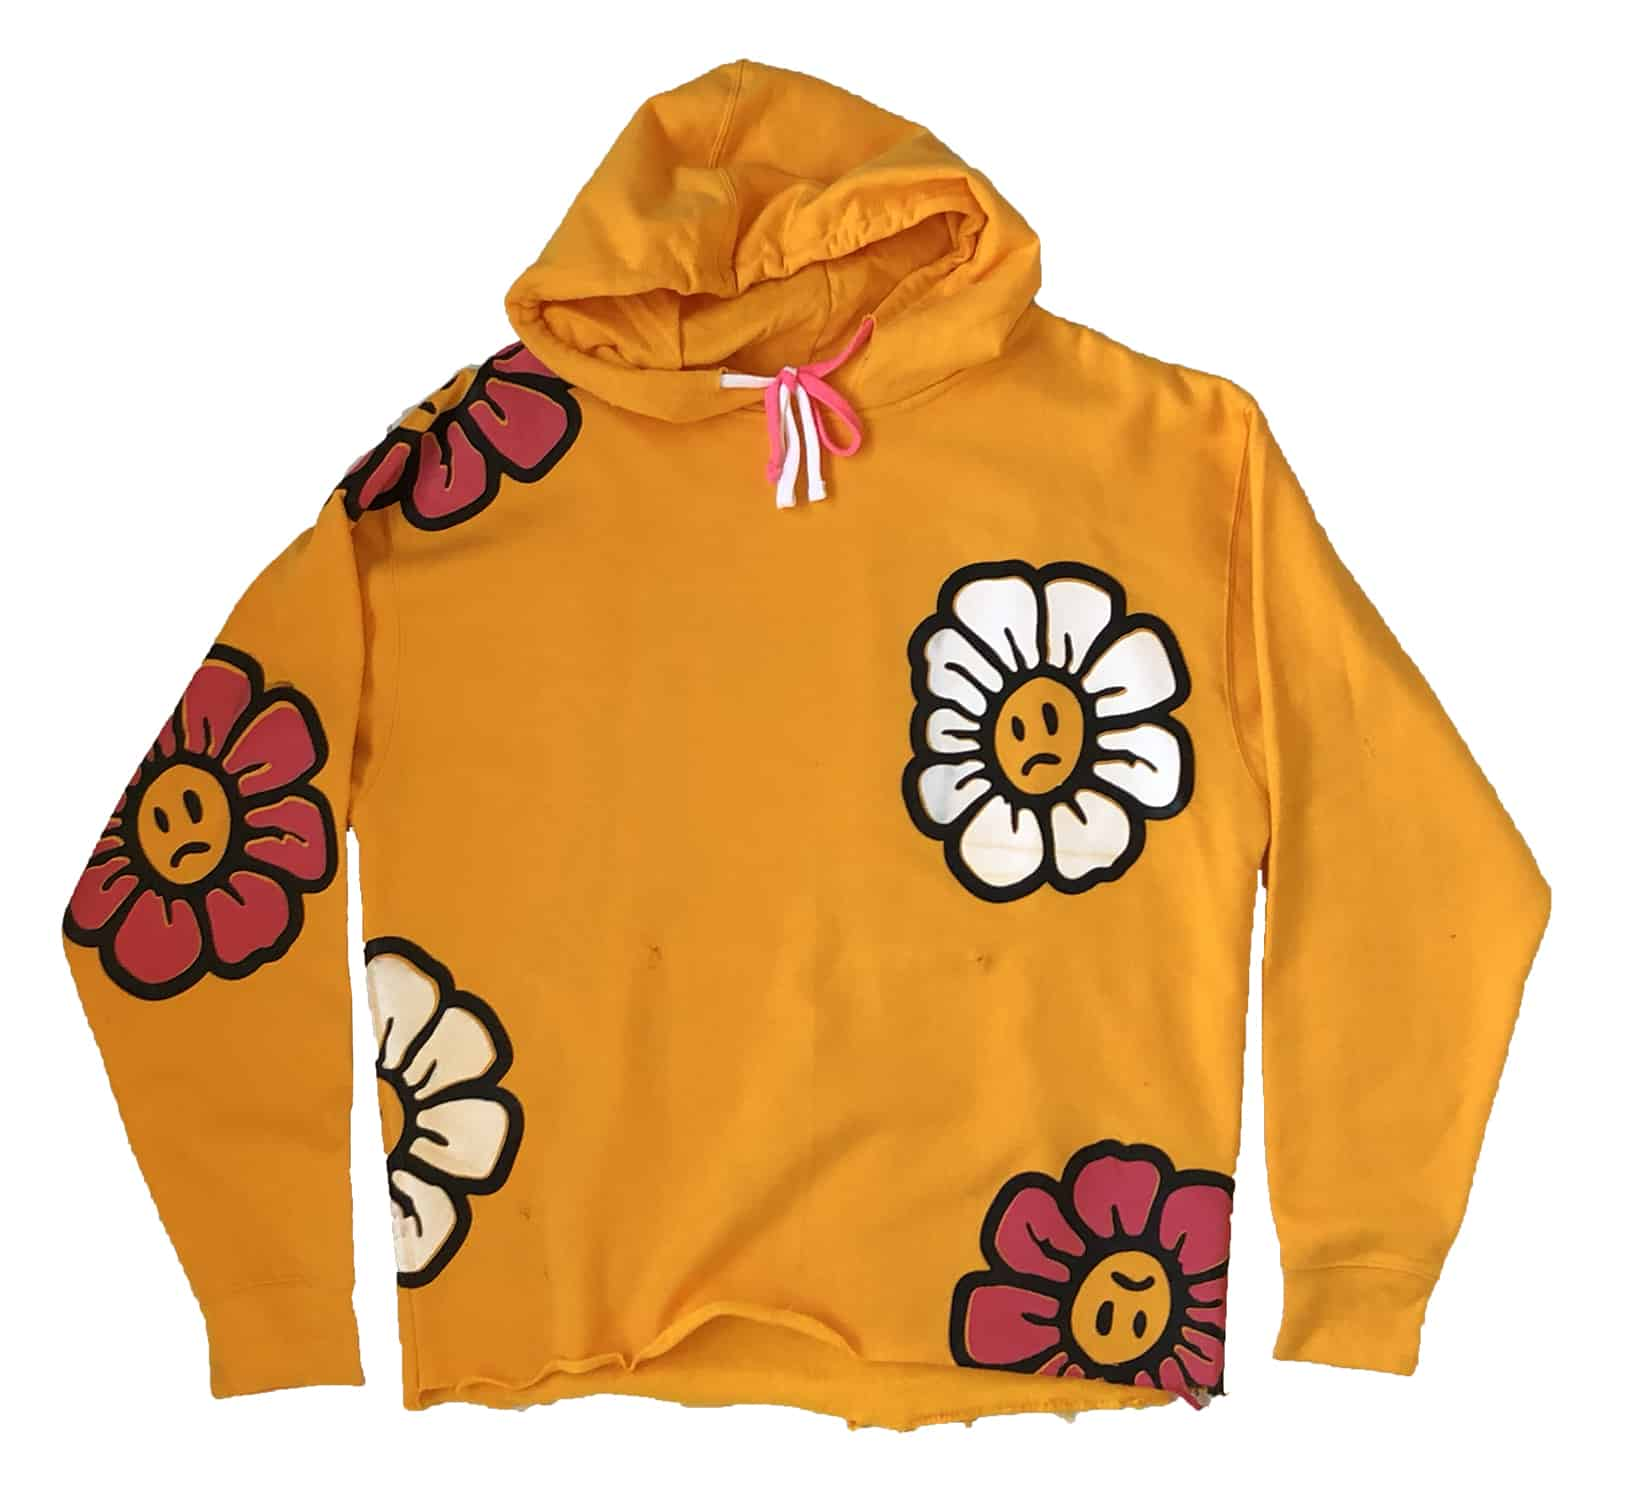 3 – Yellow Hoodie front